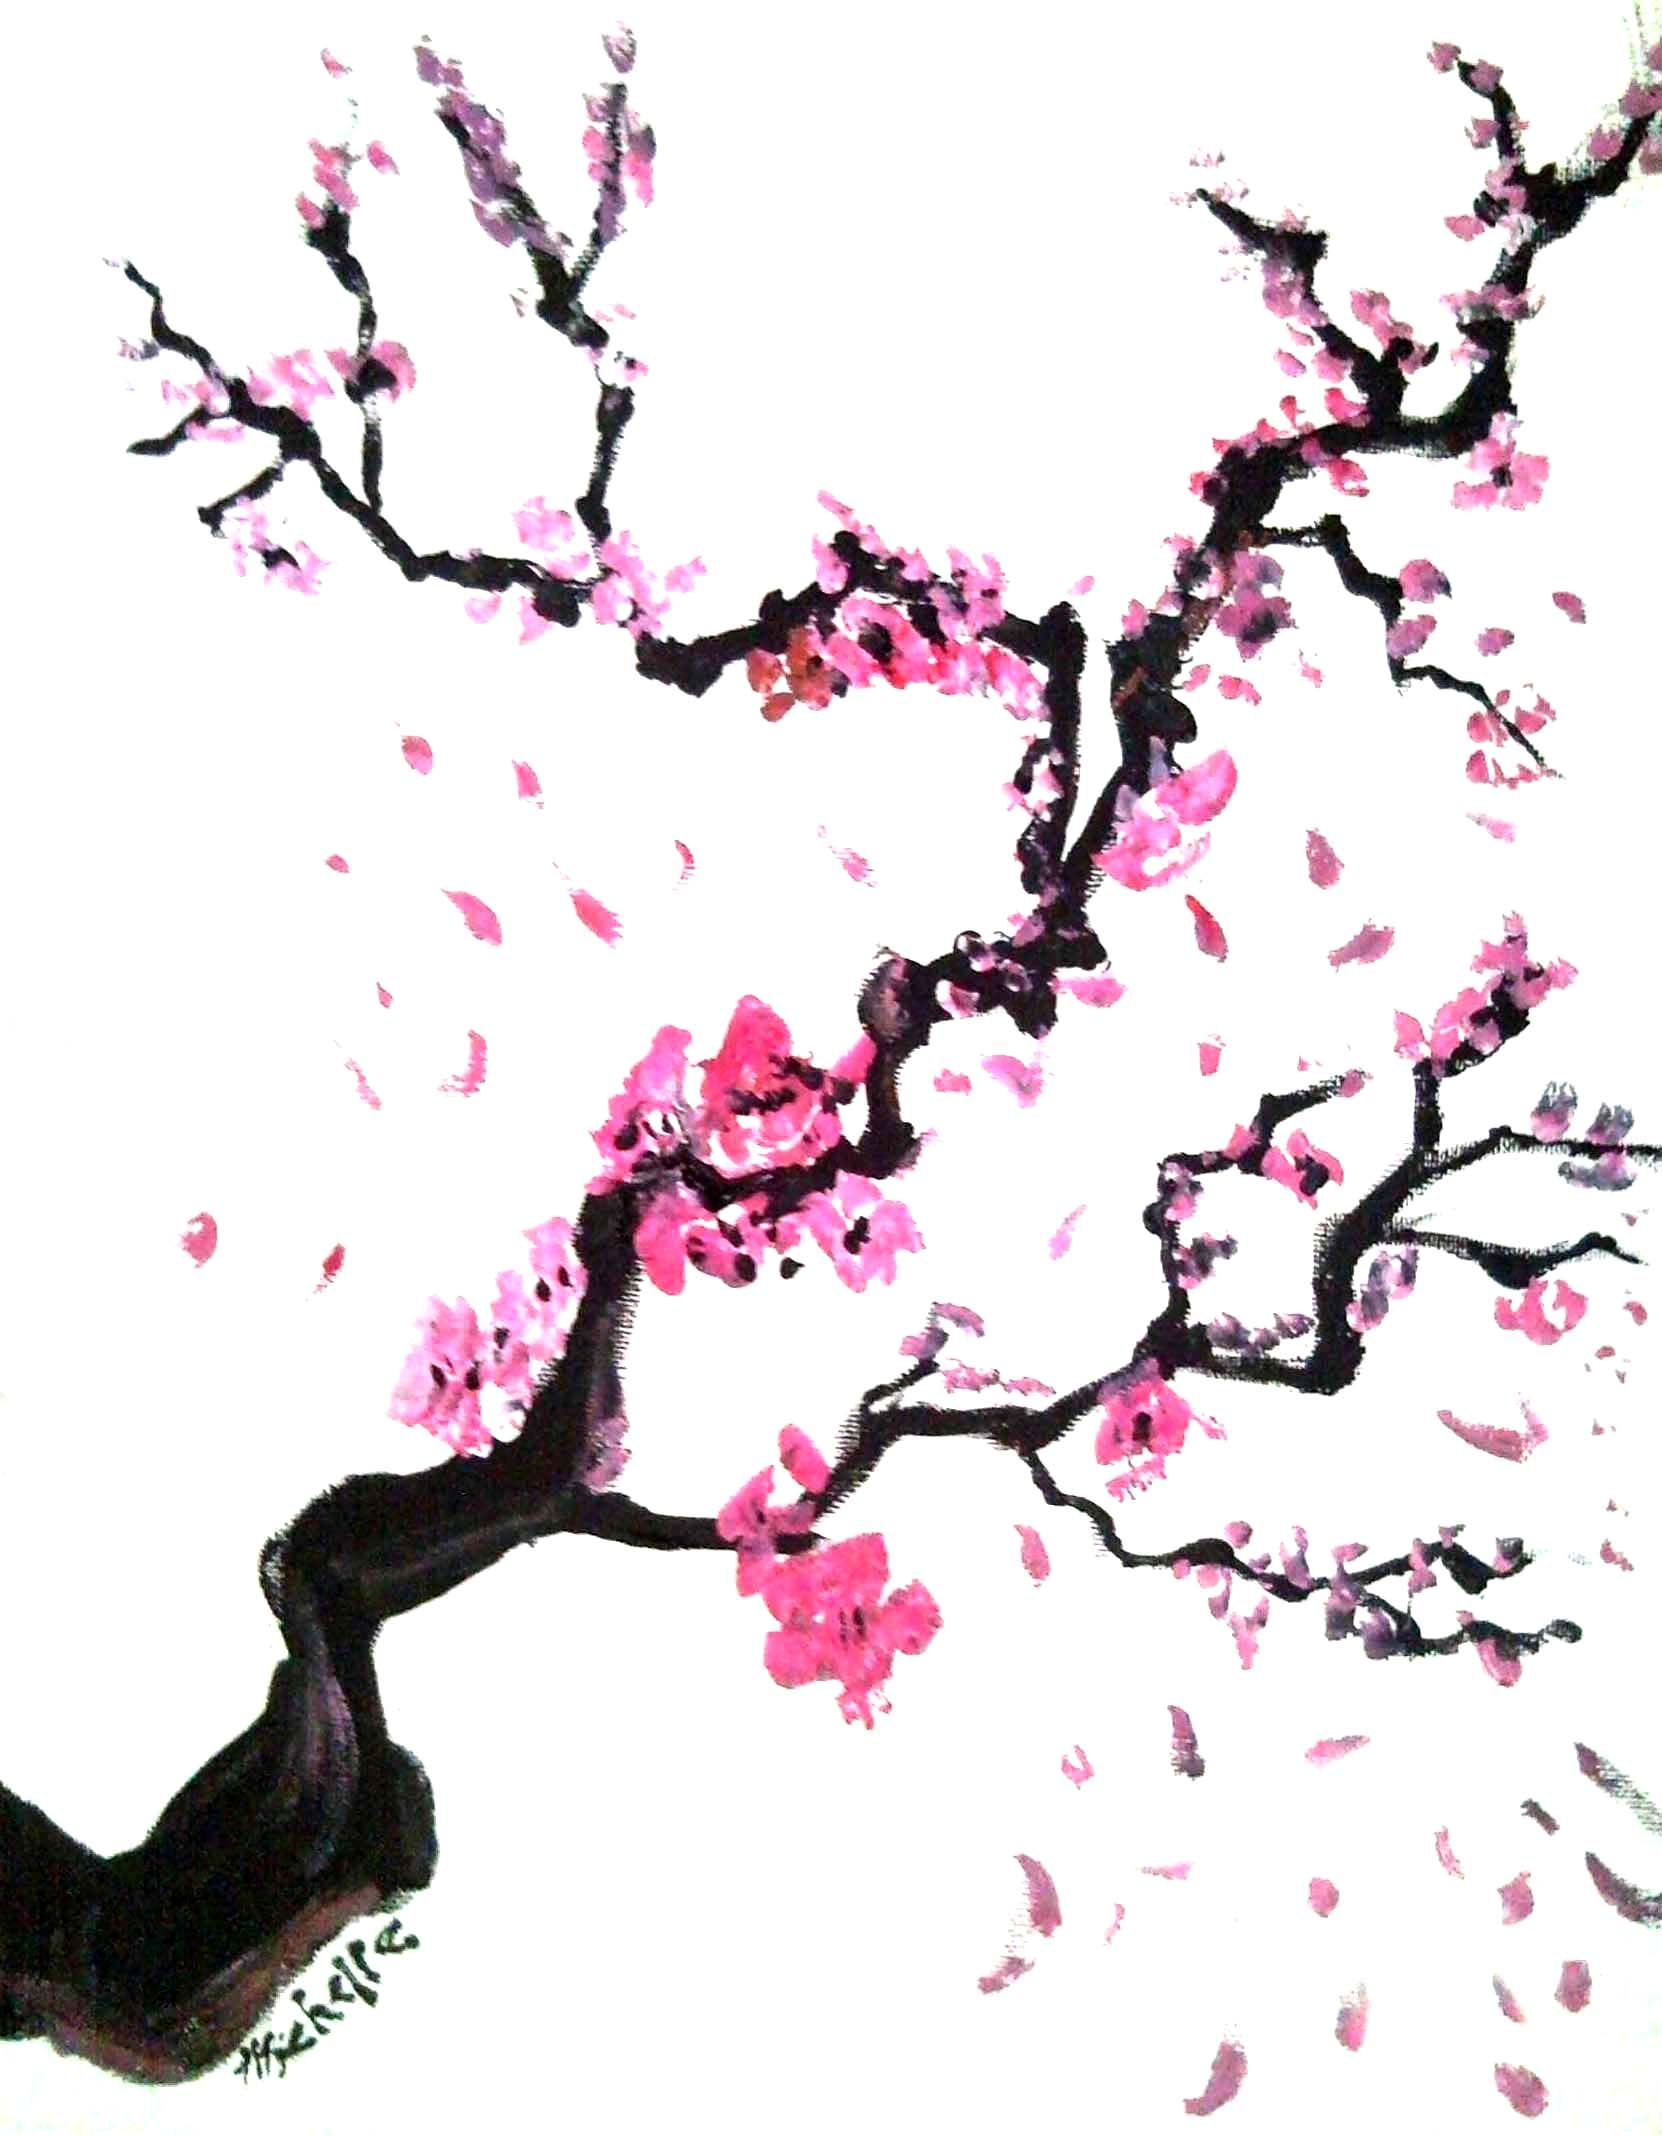 clip transparent Blossoms by karmaela on. Japanese cherry blossom tree clipart.